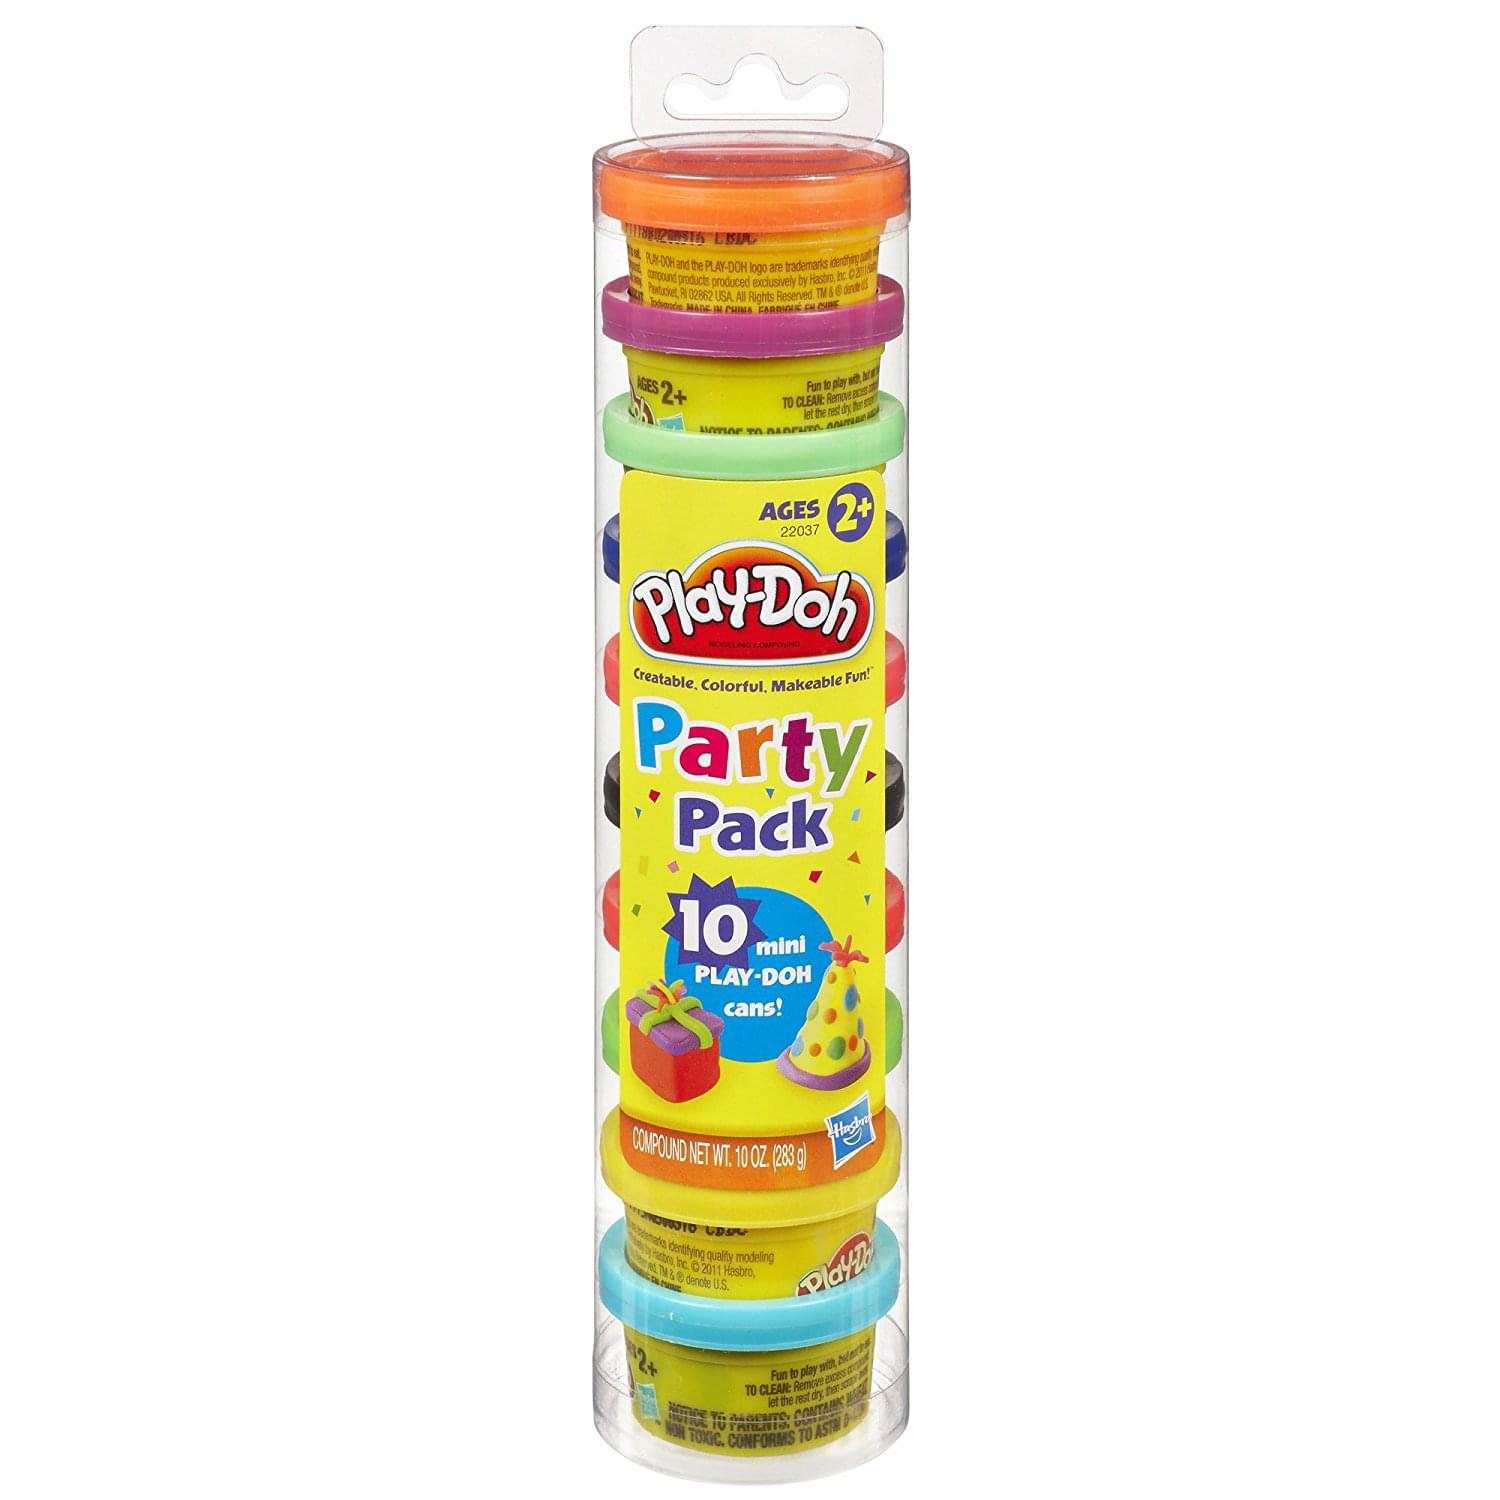 Play-Doh 10 Piece Mini Party Pack in a Tube